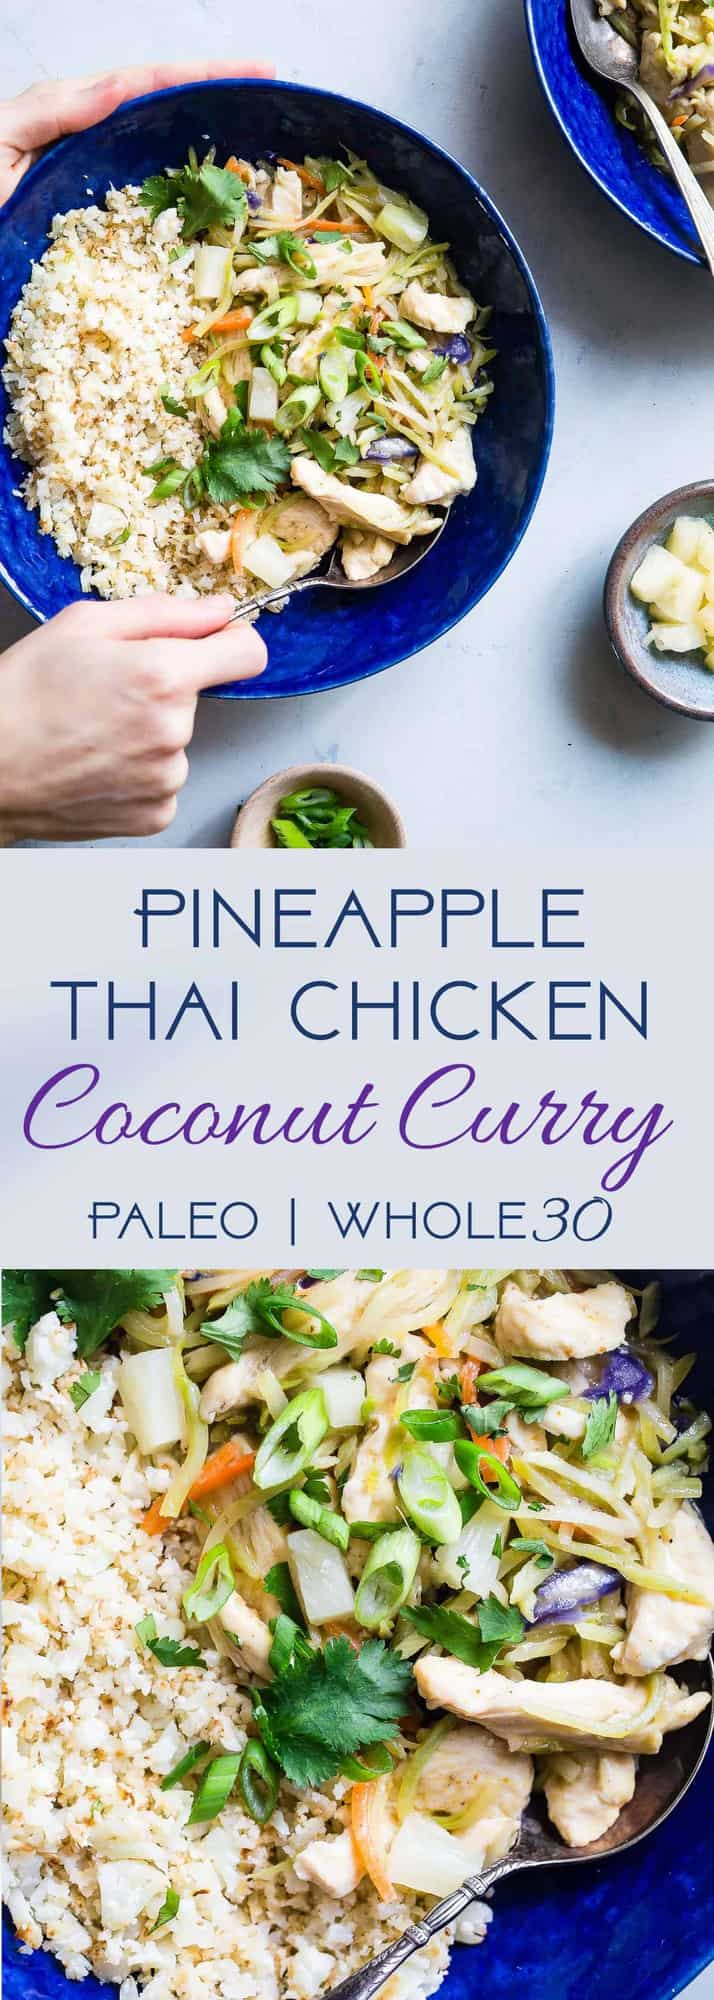 Paleo Thai PineappleChicken Curry -This quick and easyPaleo Chicken Curry uses coconut milk to make it extra creamy, and is naturally sweetened with pineapple! It's a spicy-sweet dinner that is gluten/grain/dairy/sugar free and whole30 compliant! | #Foodfaithfitness | #Whole30 #Glutenfree #Paleo #Curry #Dairyfree